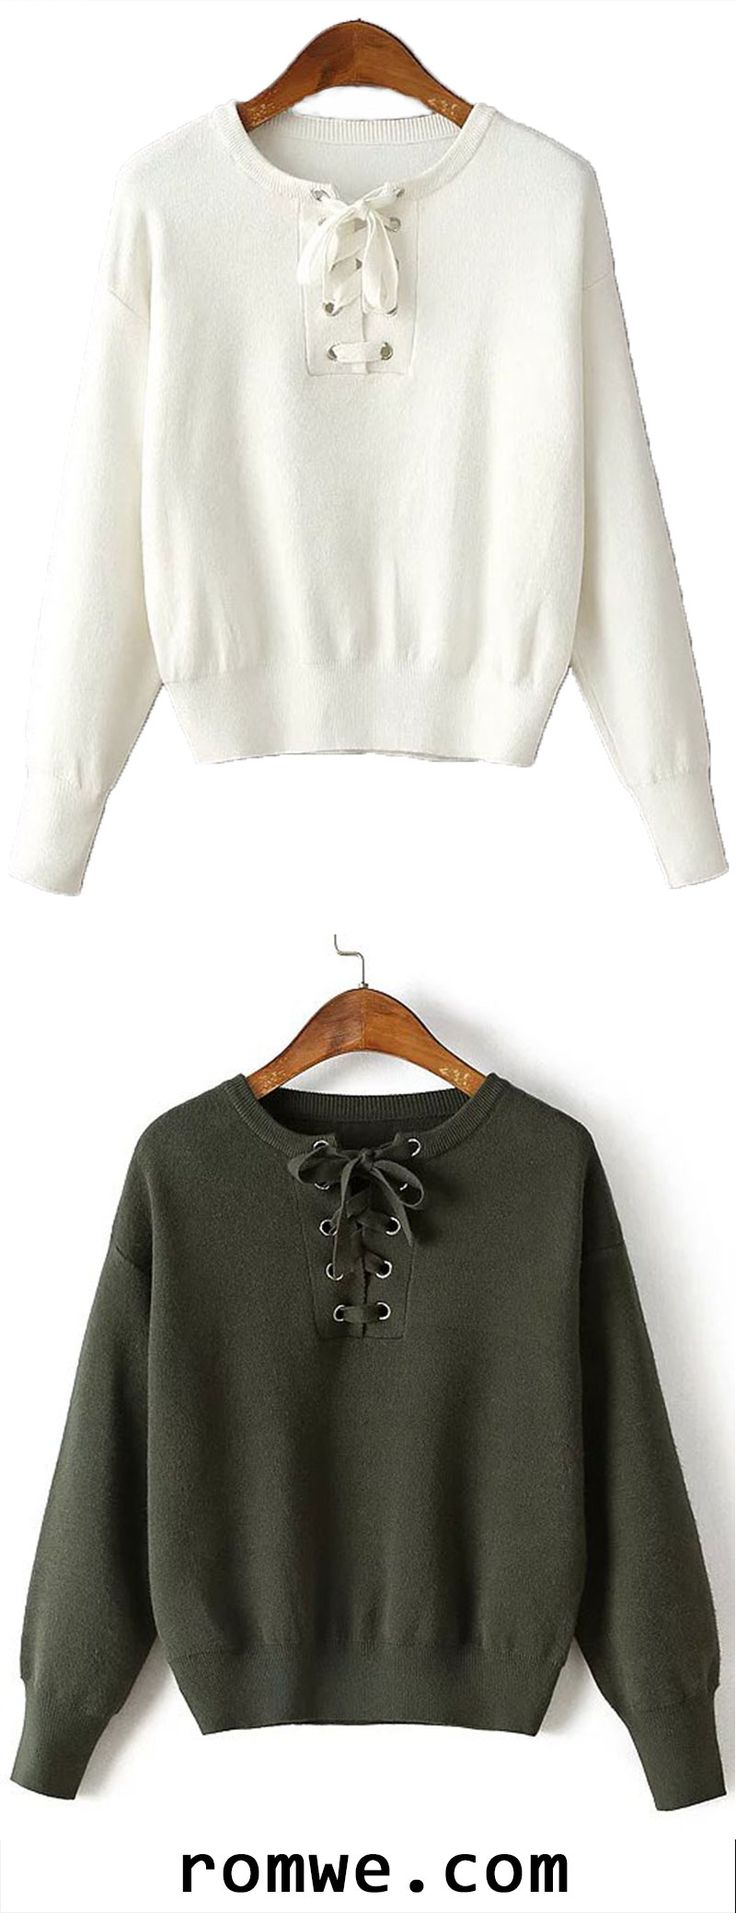 Black Friday Sale - Army Green Eyelet Lace Up Drop Shoulder Sweater